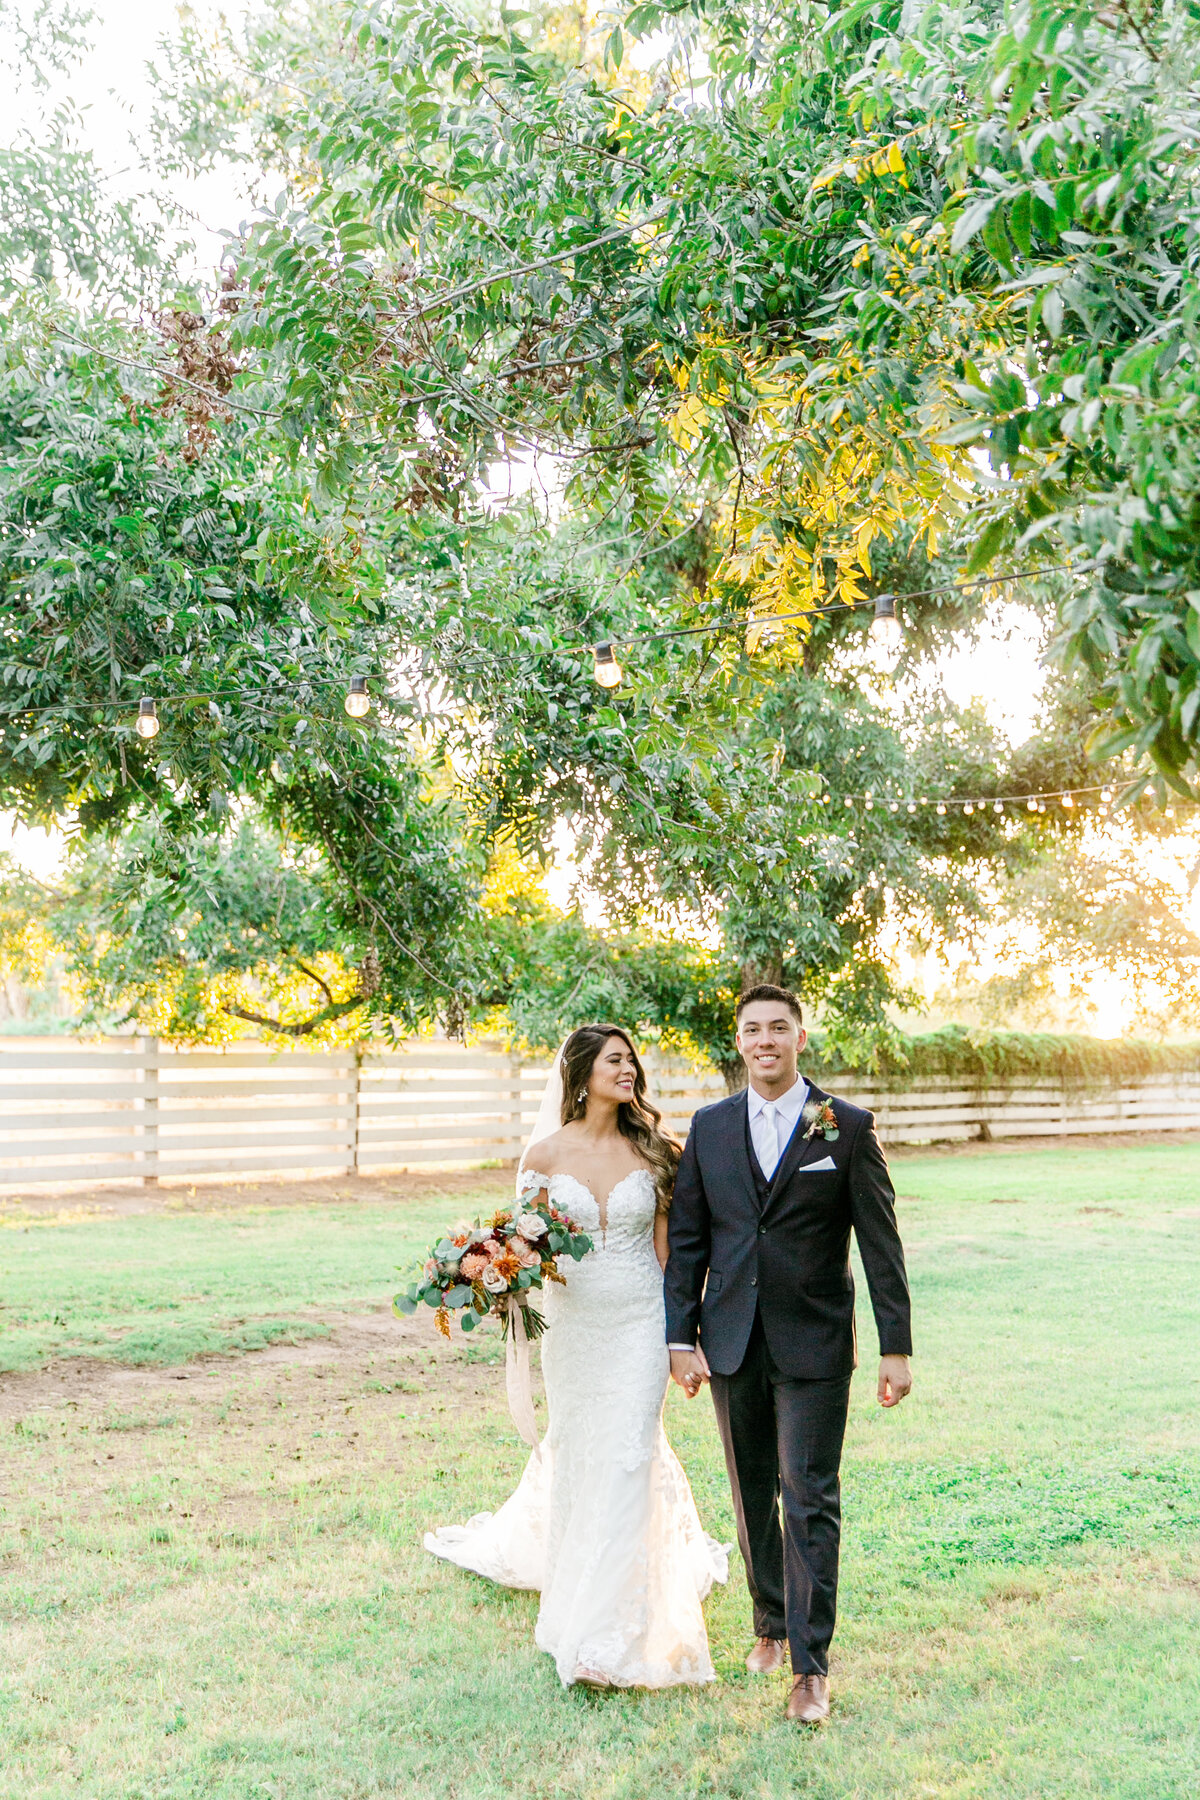 Karlie Colleen Photography - Phoenix Arizona - Farm At South Mountain Venue - Vanessa & Robert-589